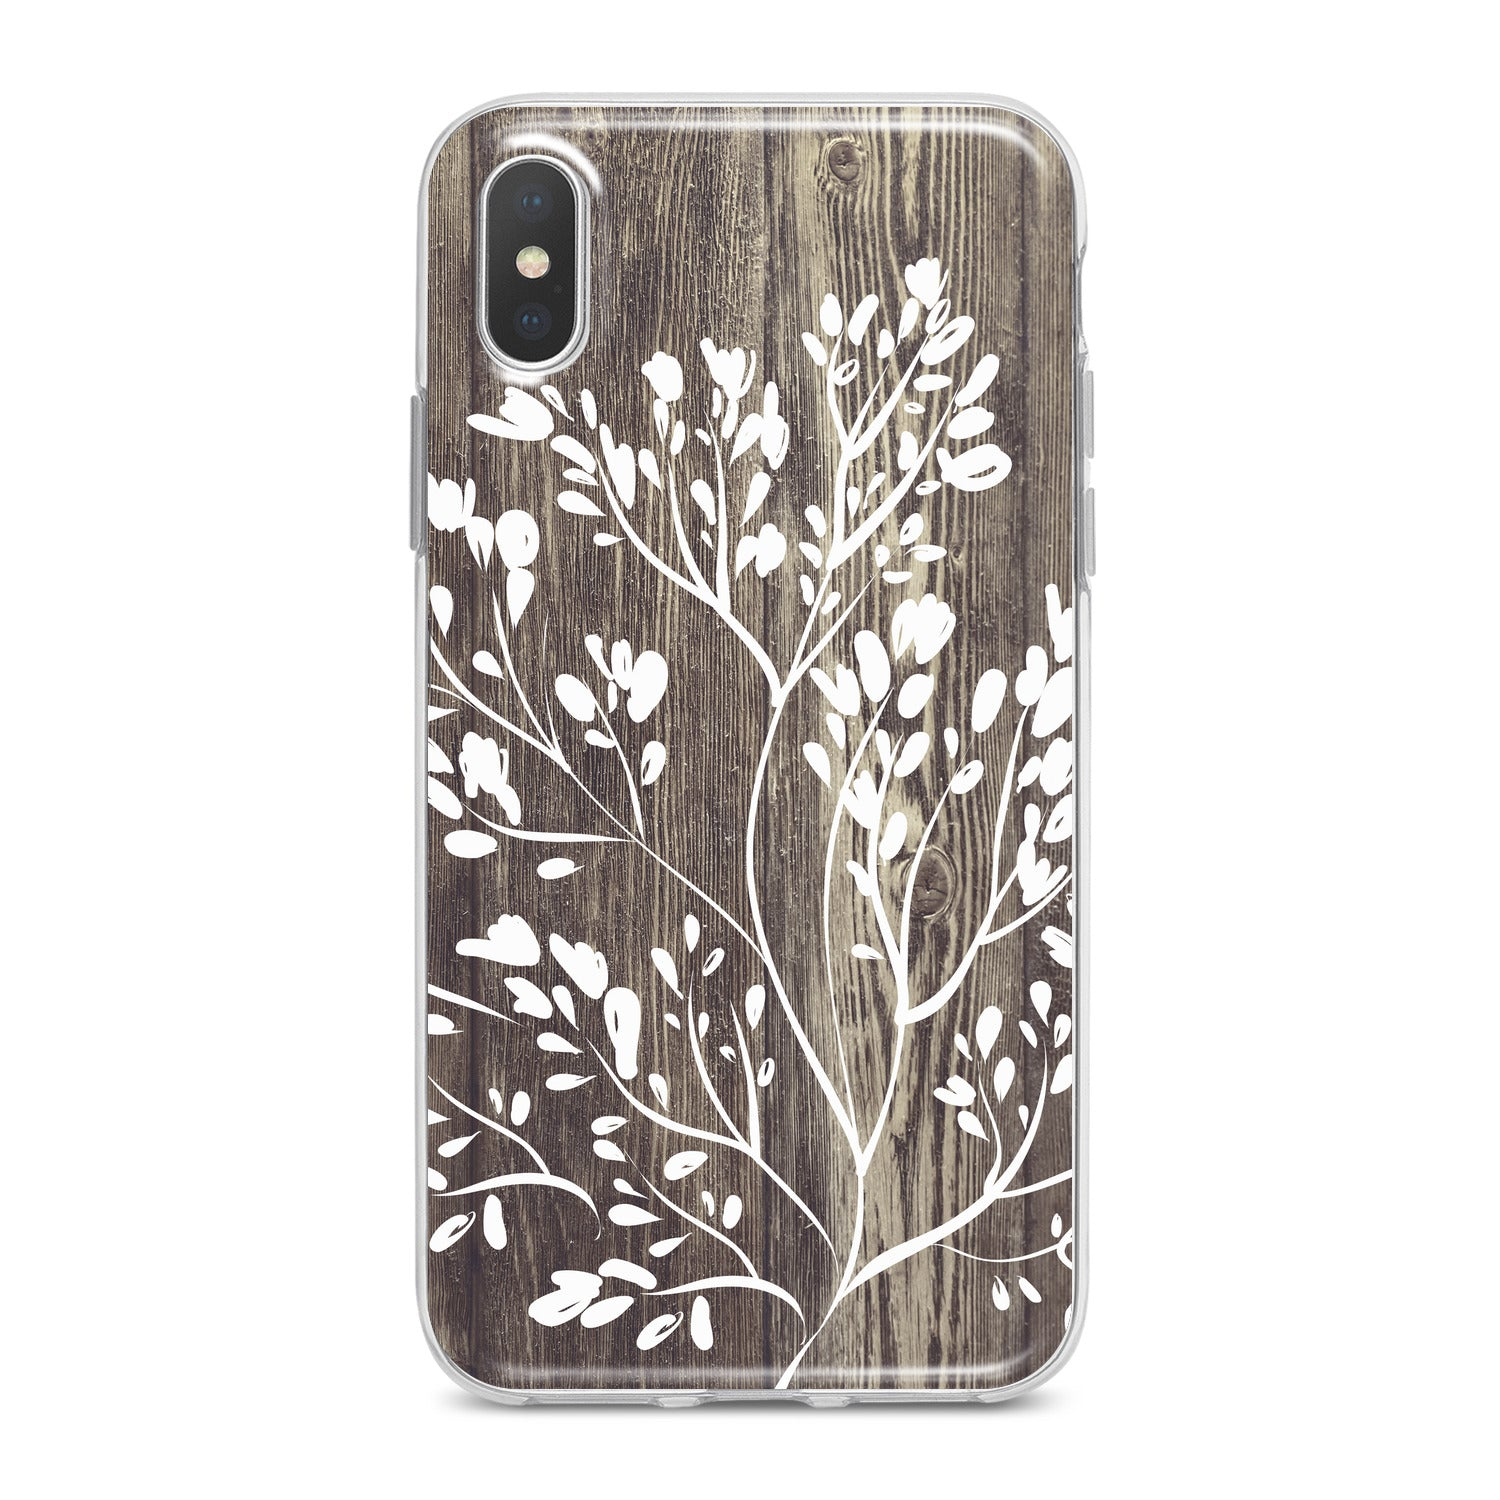 Lex Altern White Tree Pattern Phone Case for your iPhone & Android phone.